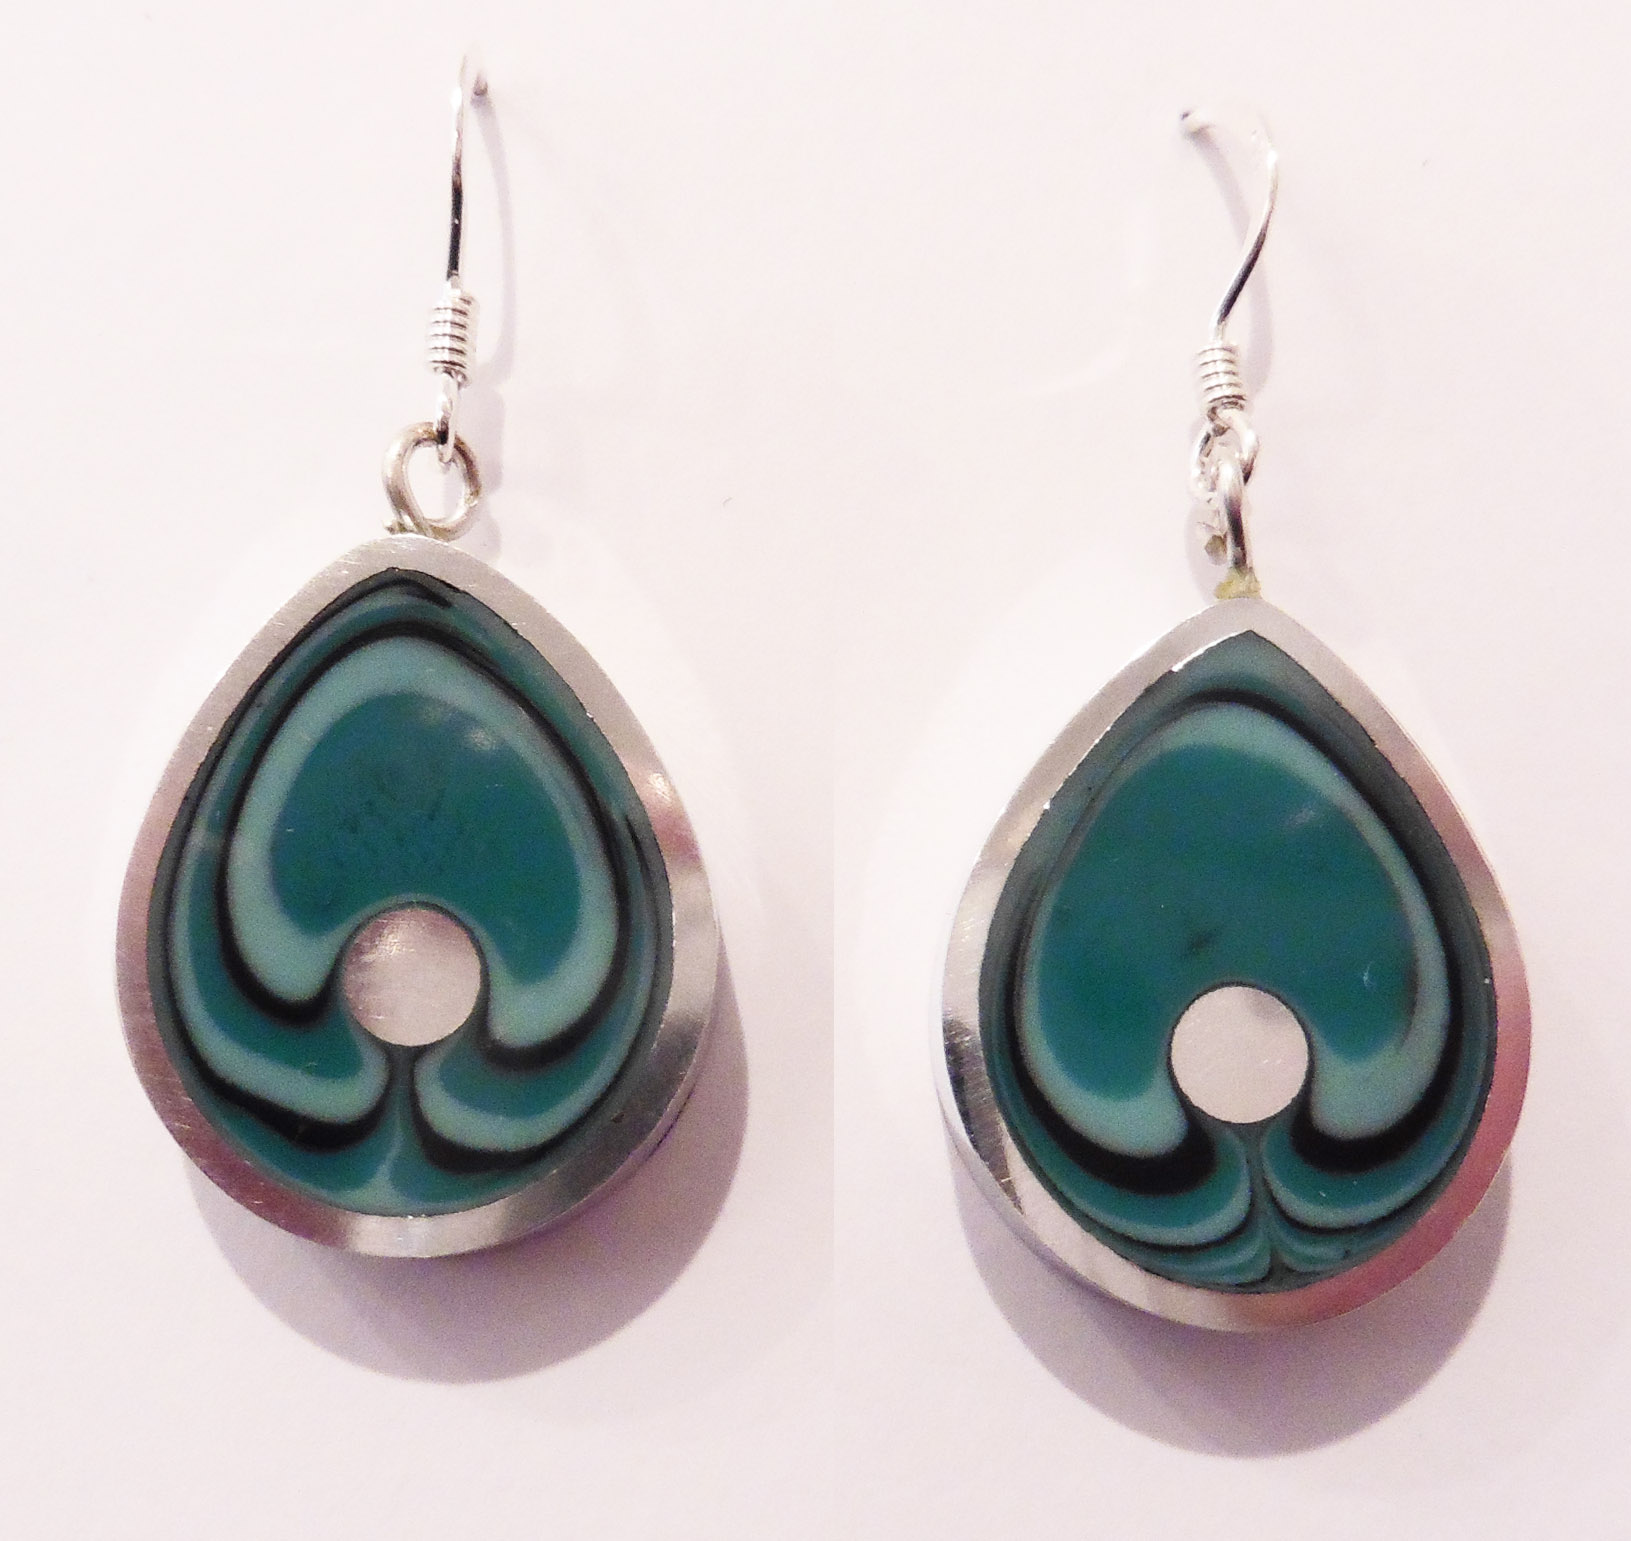 Teardrop lagoon earrings